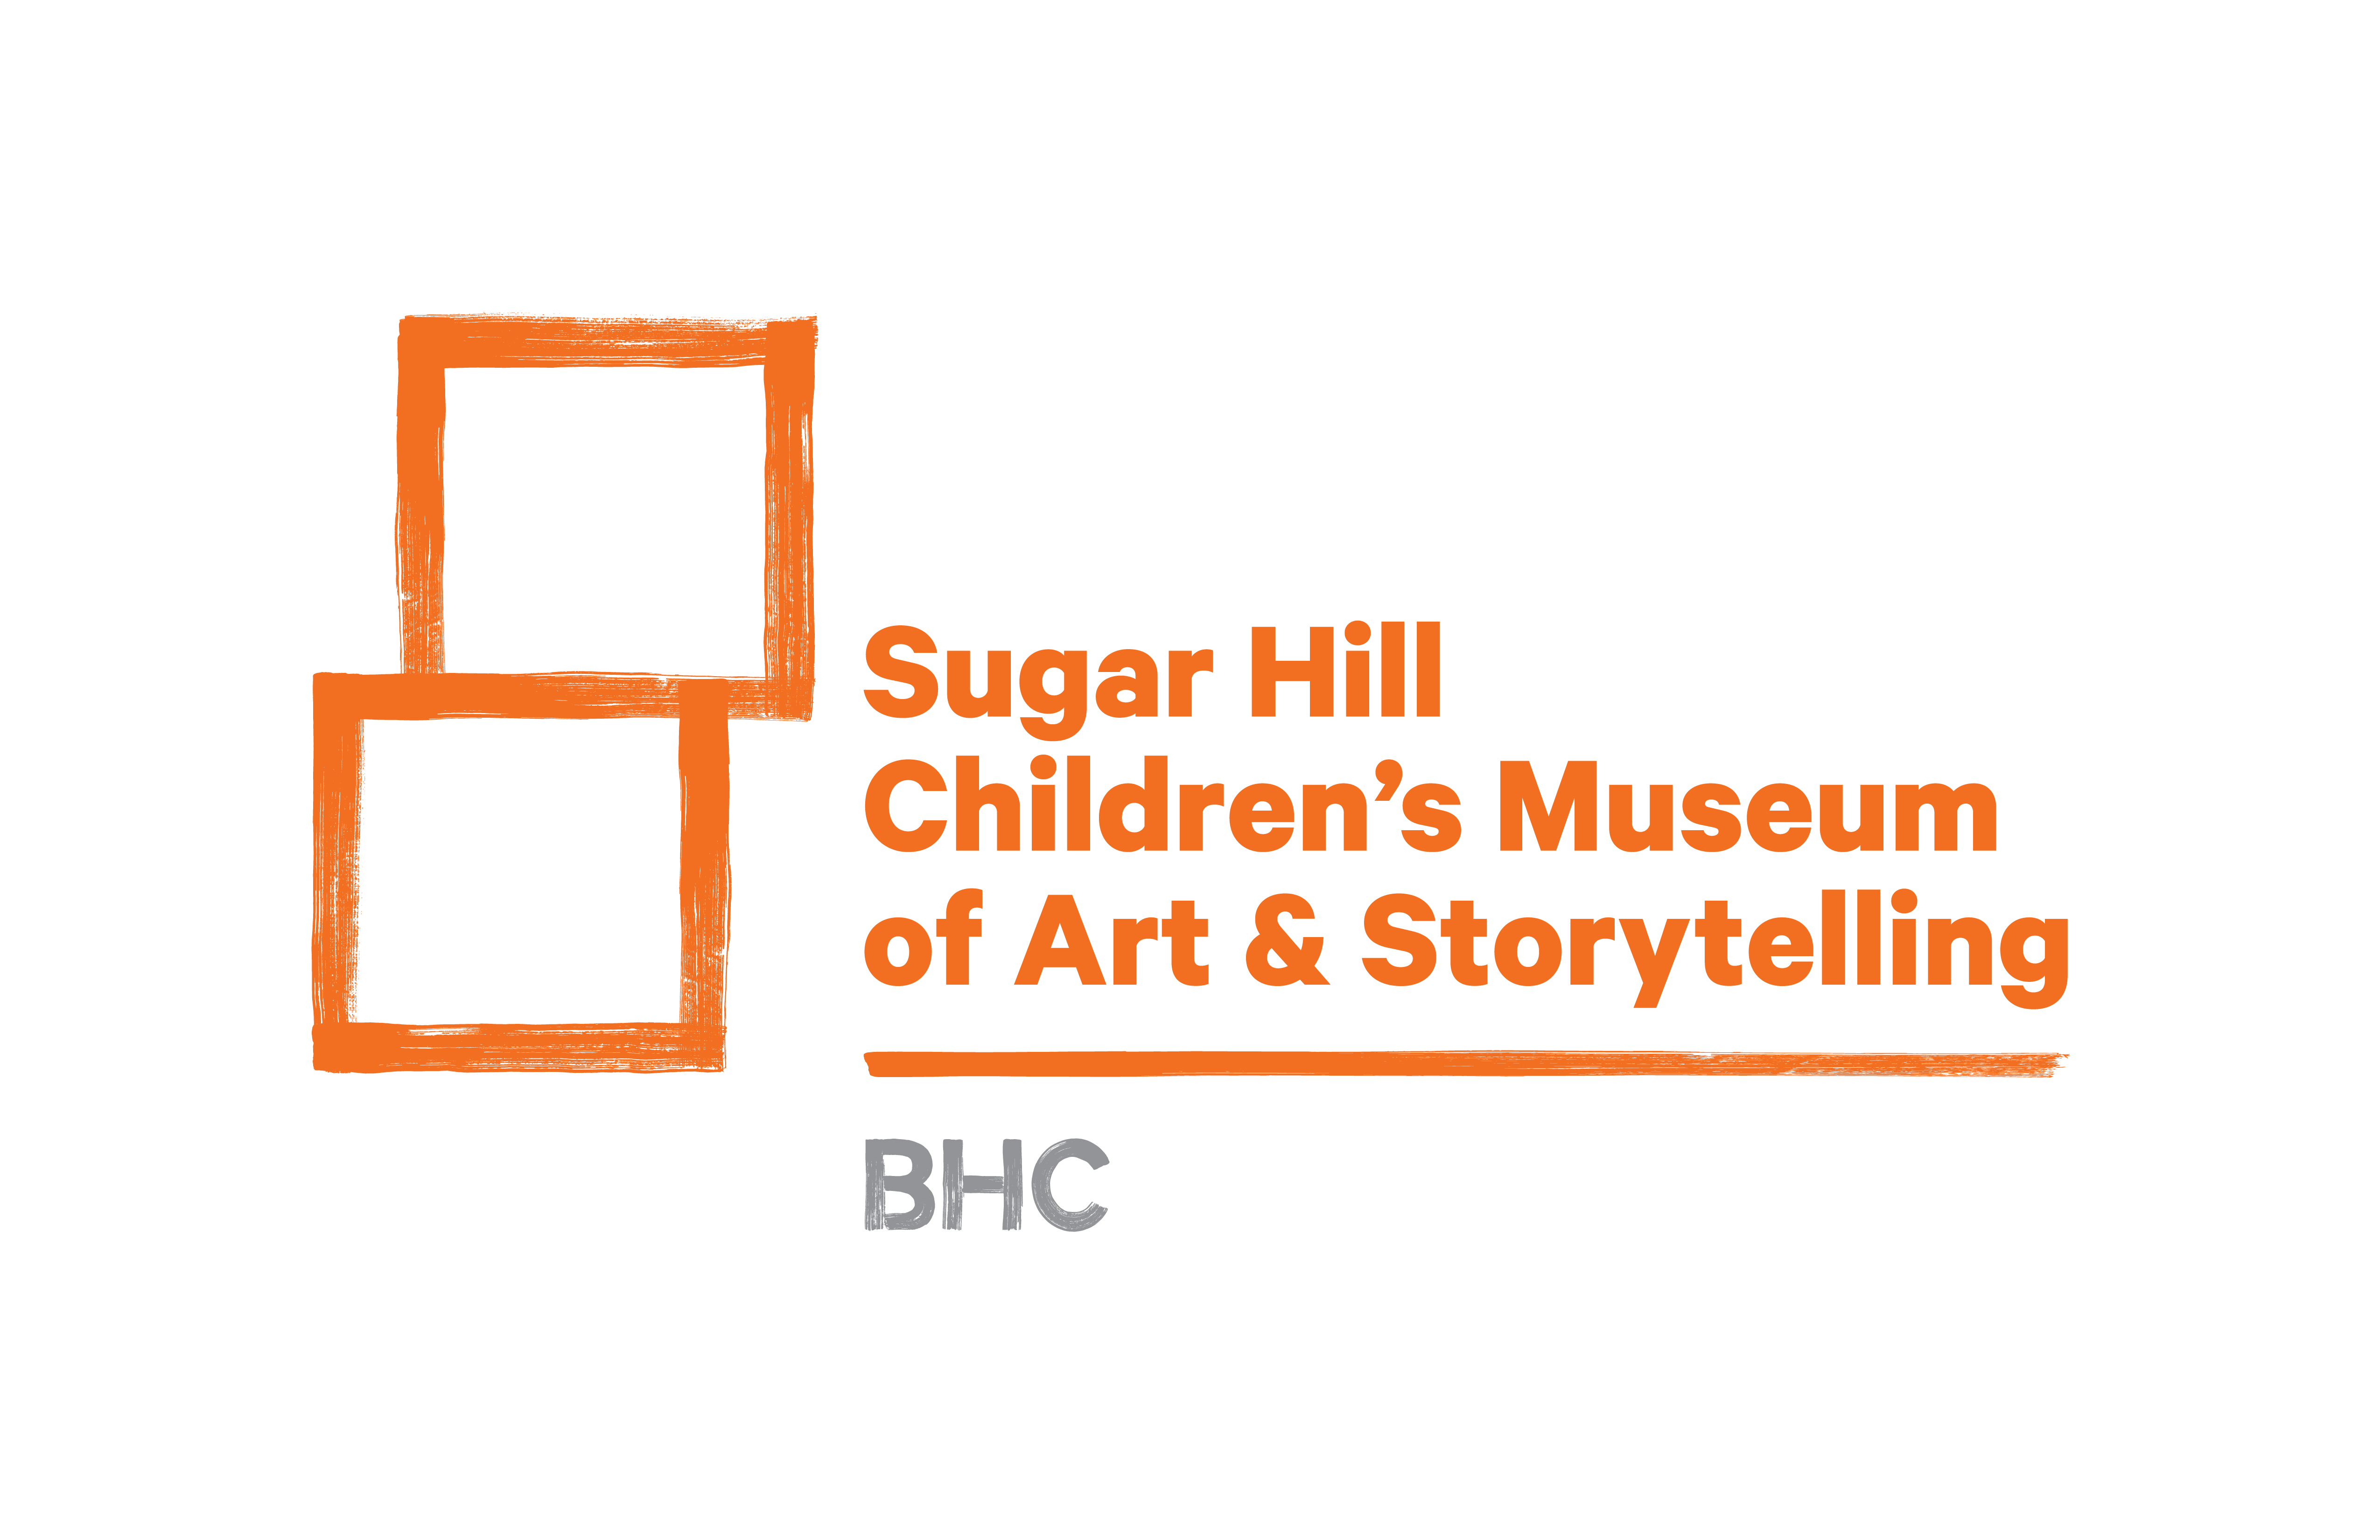 Sugar Hill Children's Museum of Art & Storytelling logo